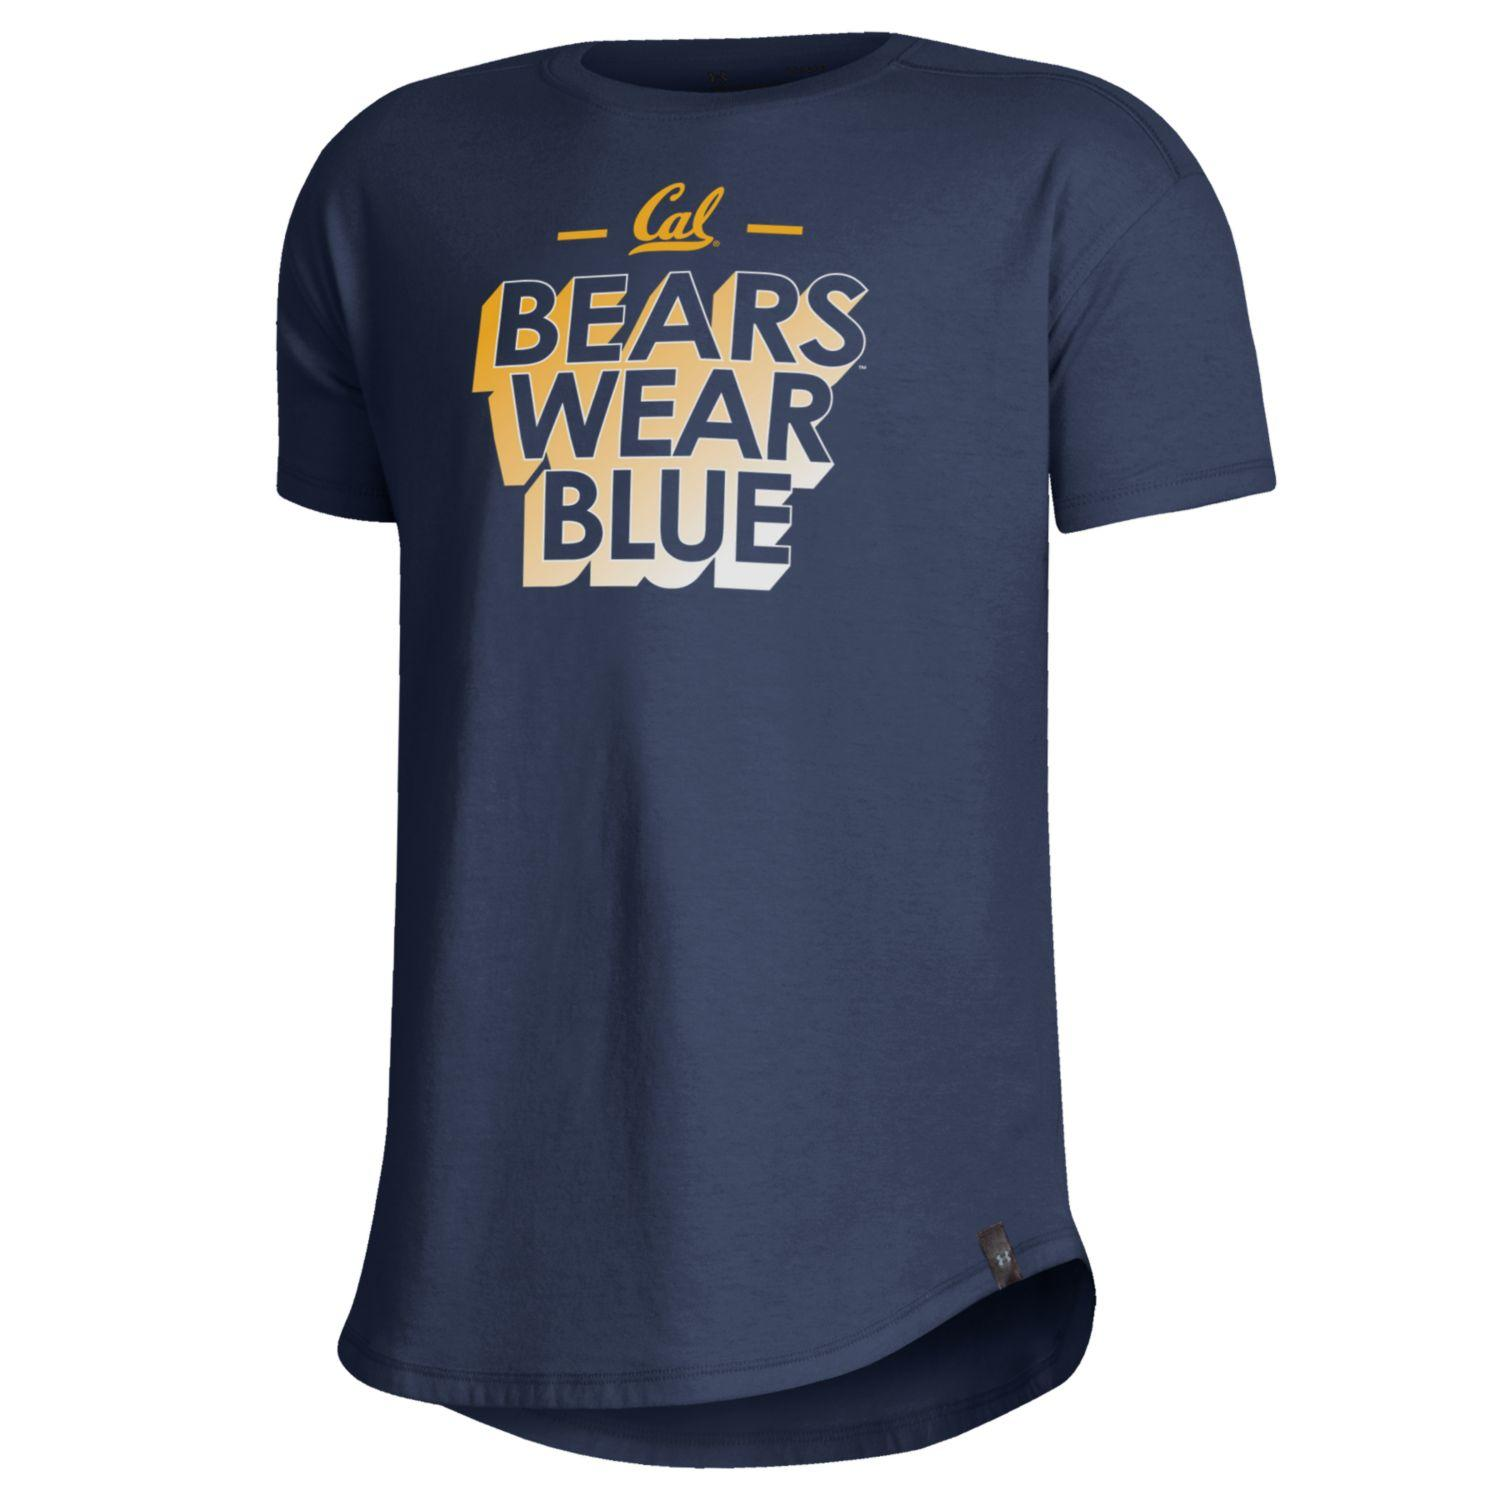 Youth G SS Tee Performance Cotton Bears Wear Blue